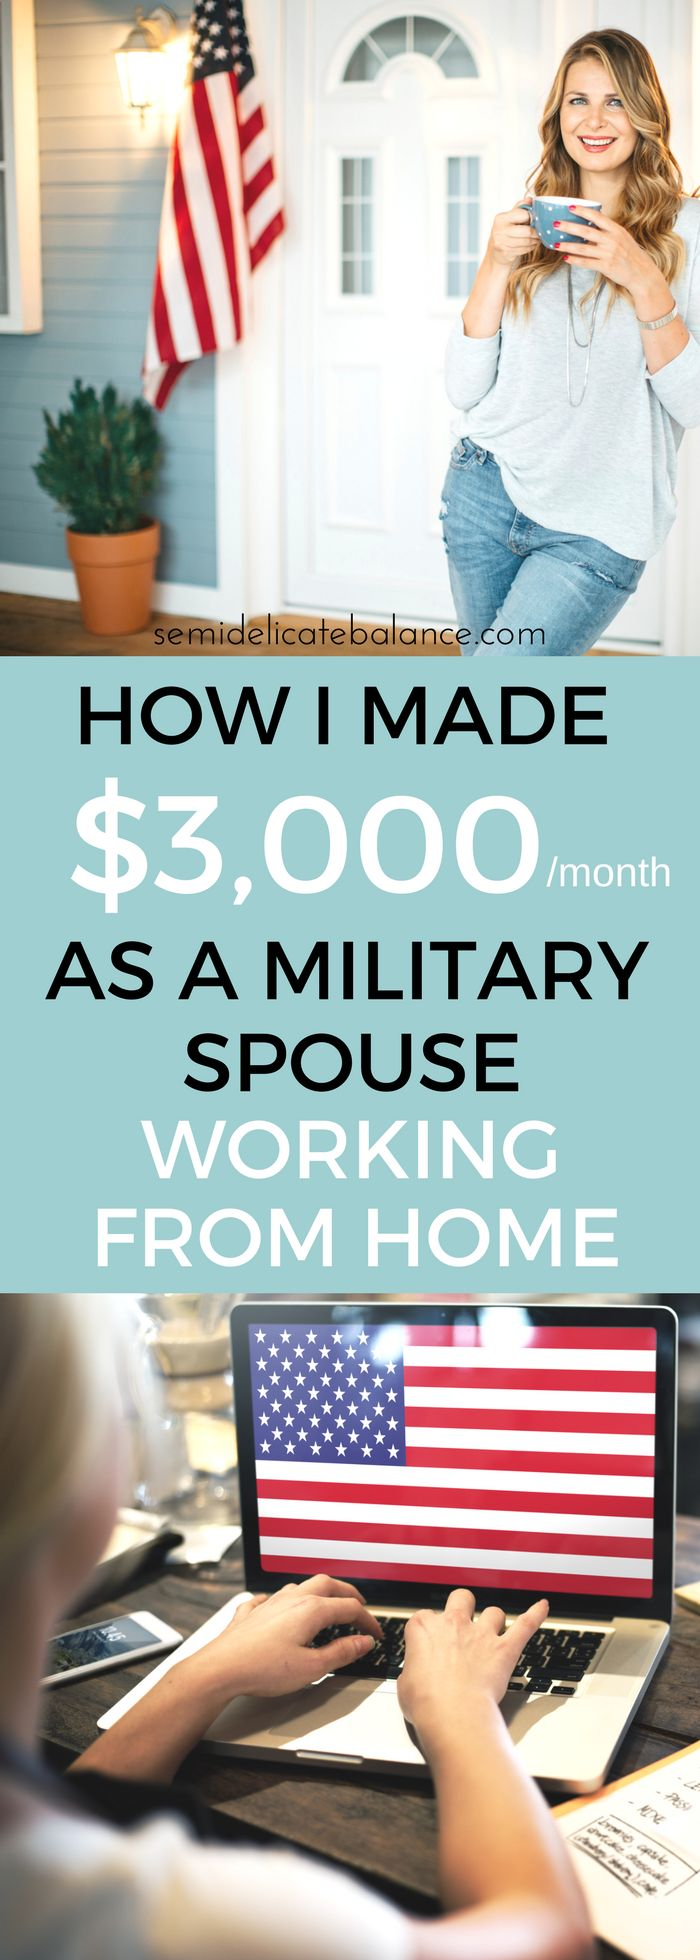 Finally, a legit way to make money working from home when you're a military spouse or stay at home mom.